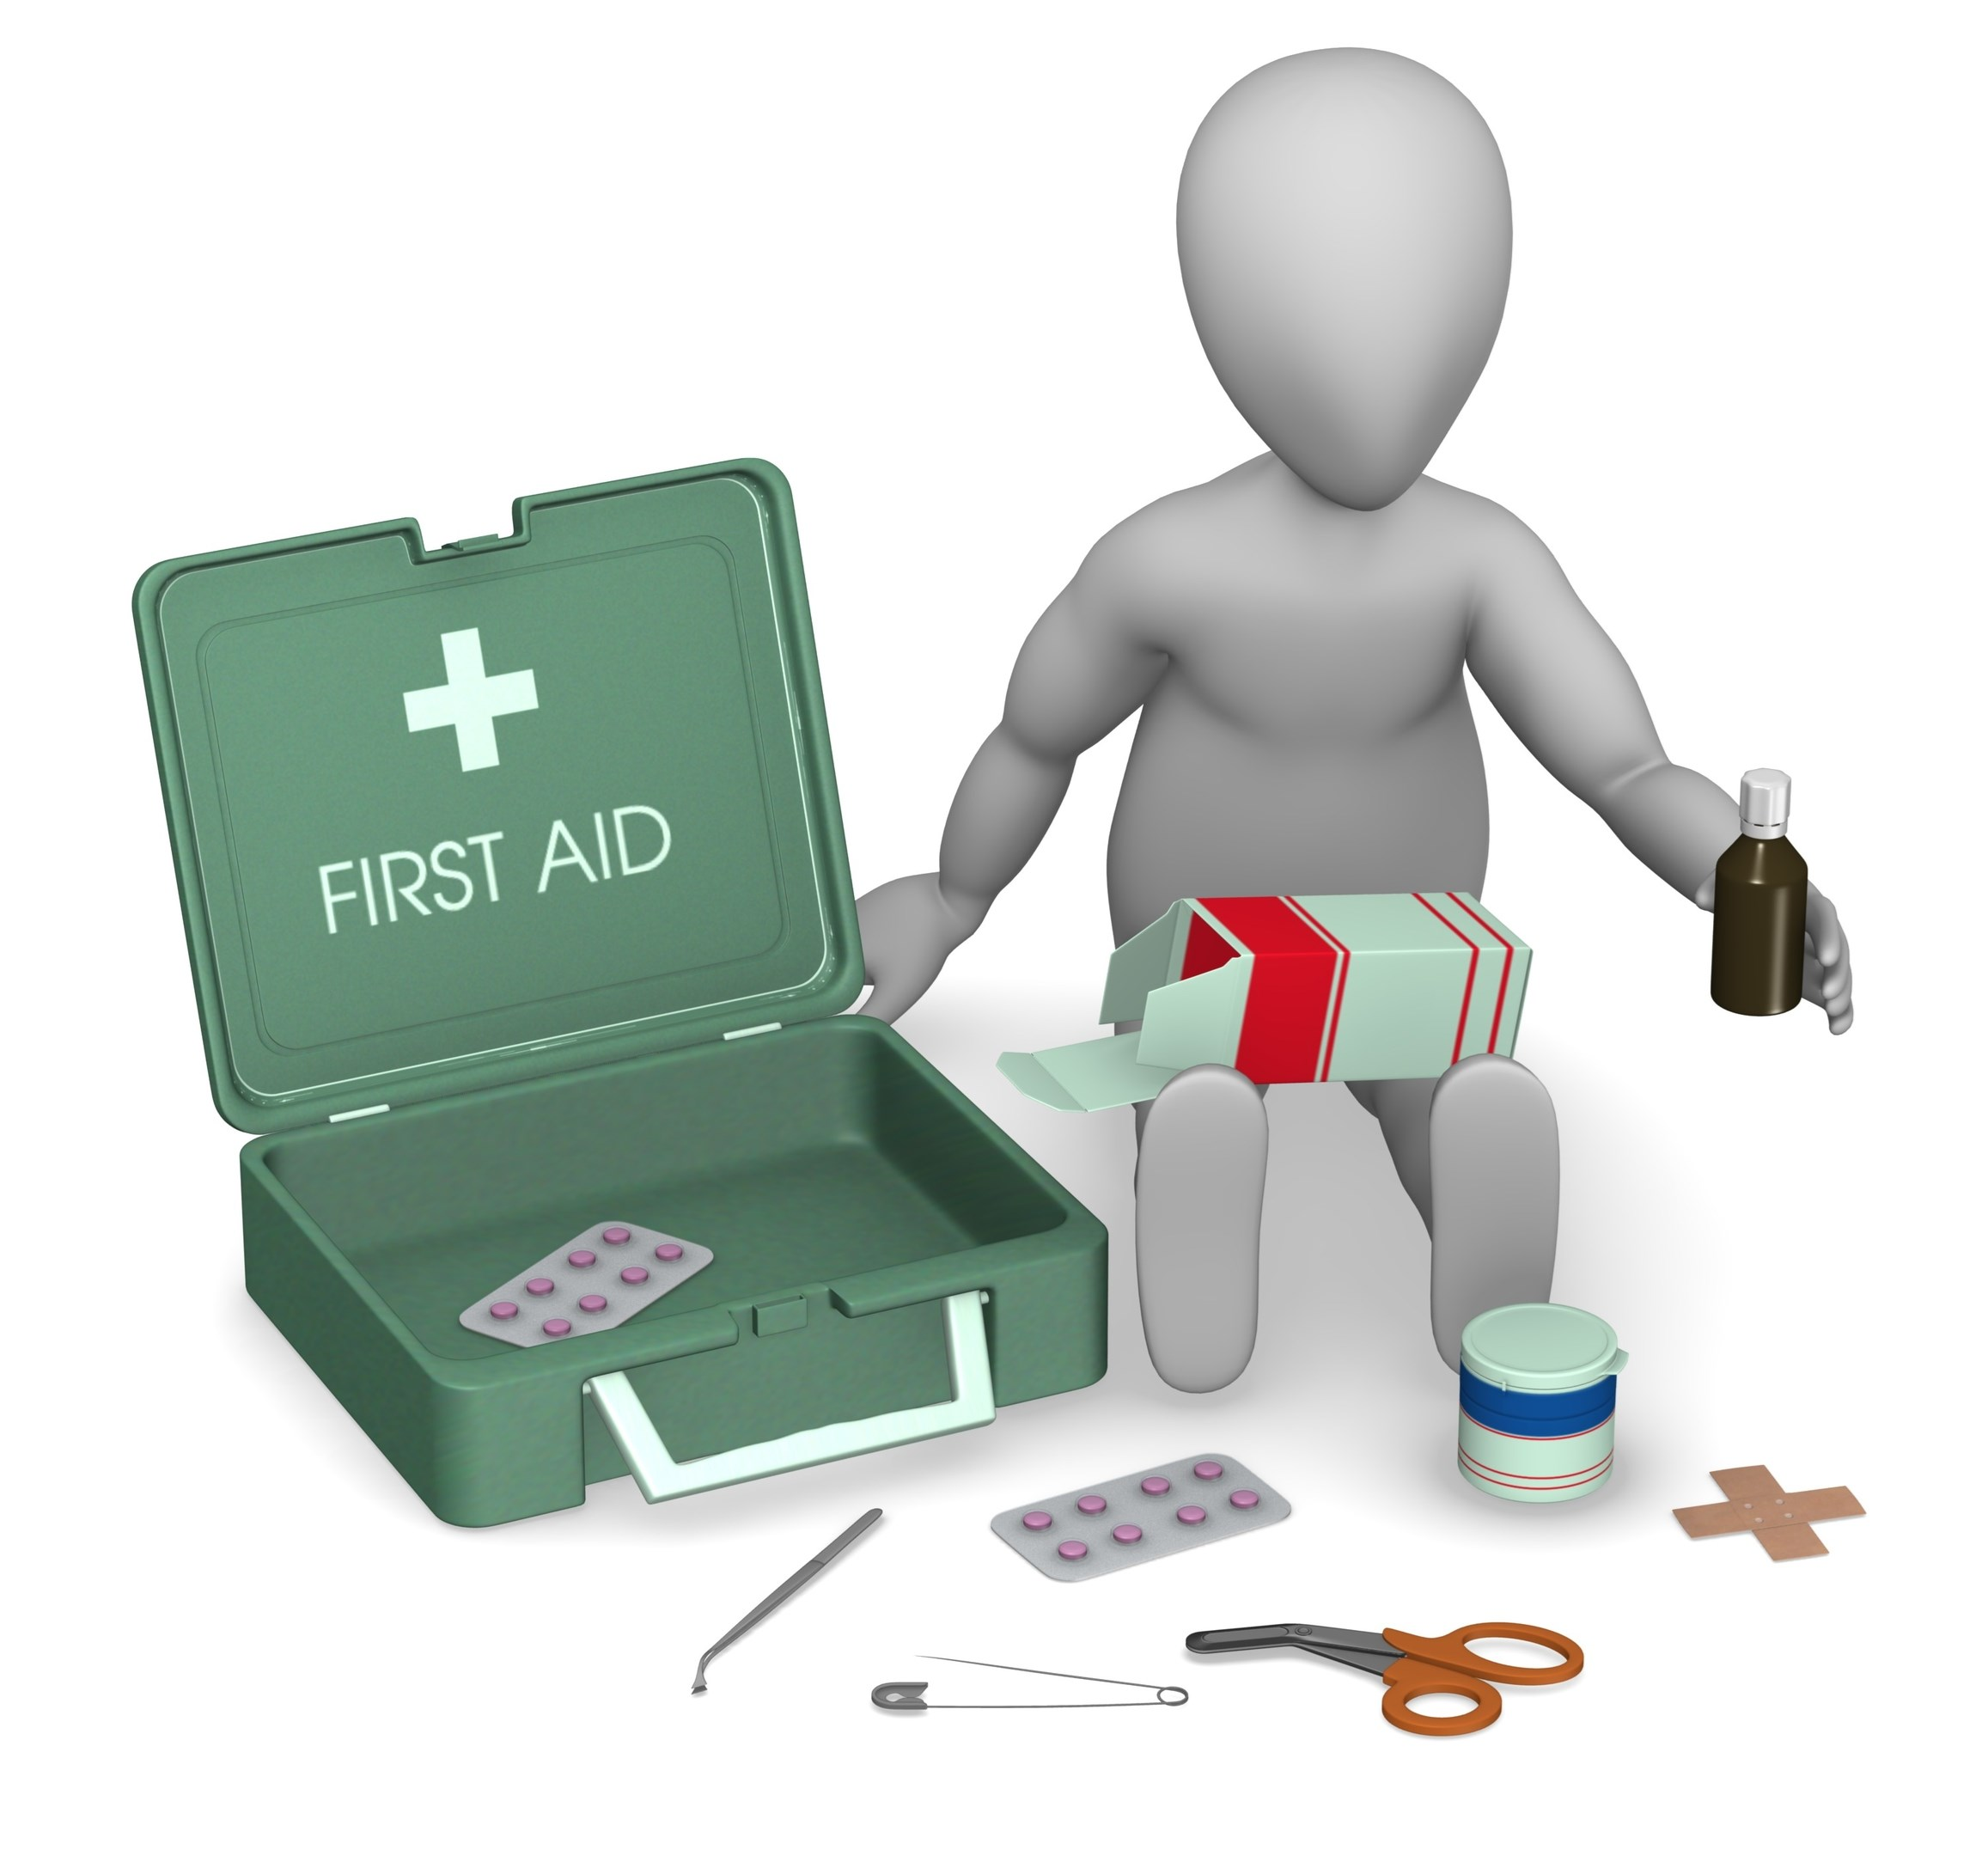 Sign up for one of our top Red Cross programs Classes include First Aid AED BLS CPR EMR swimming water safety babysitting child care and more!